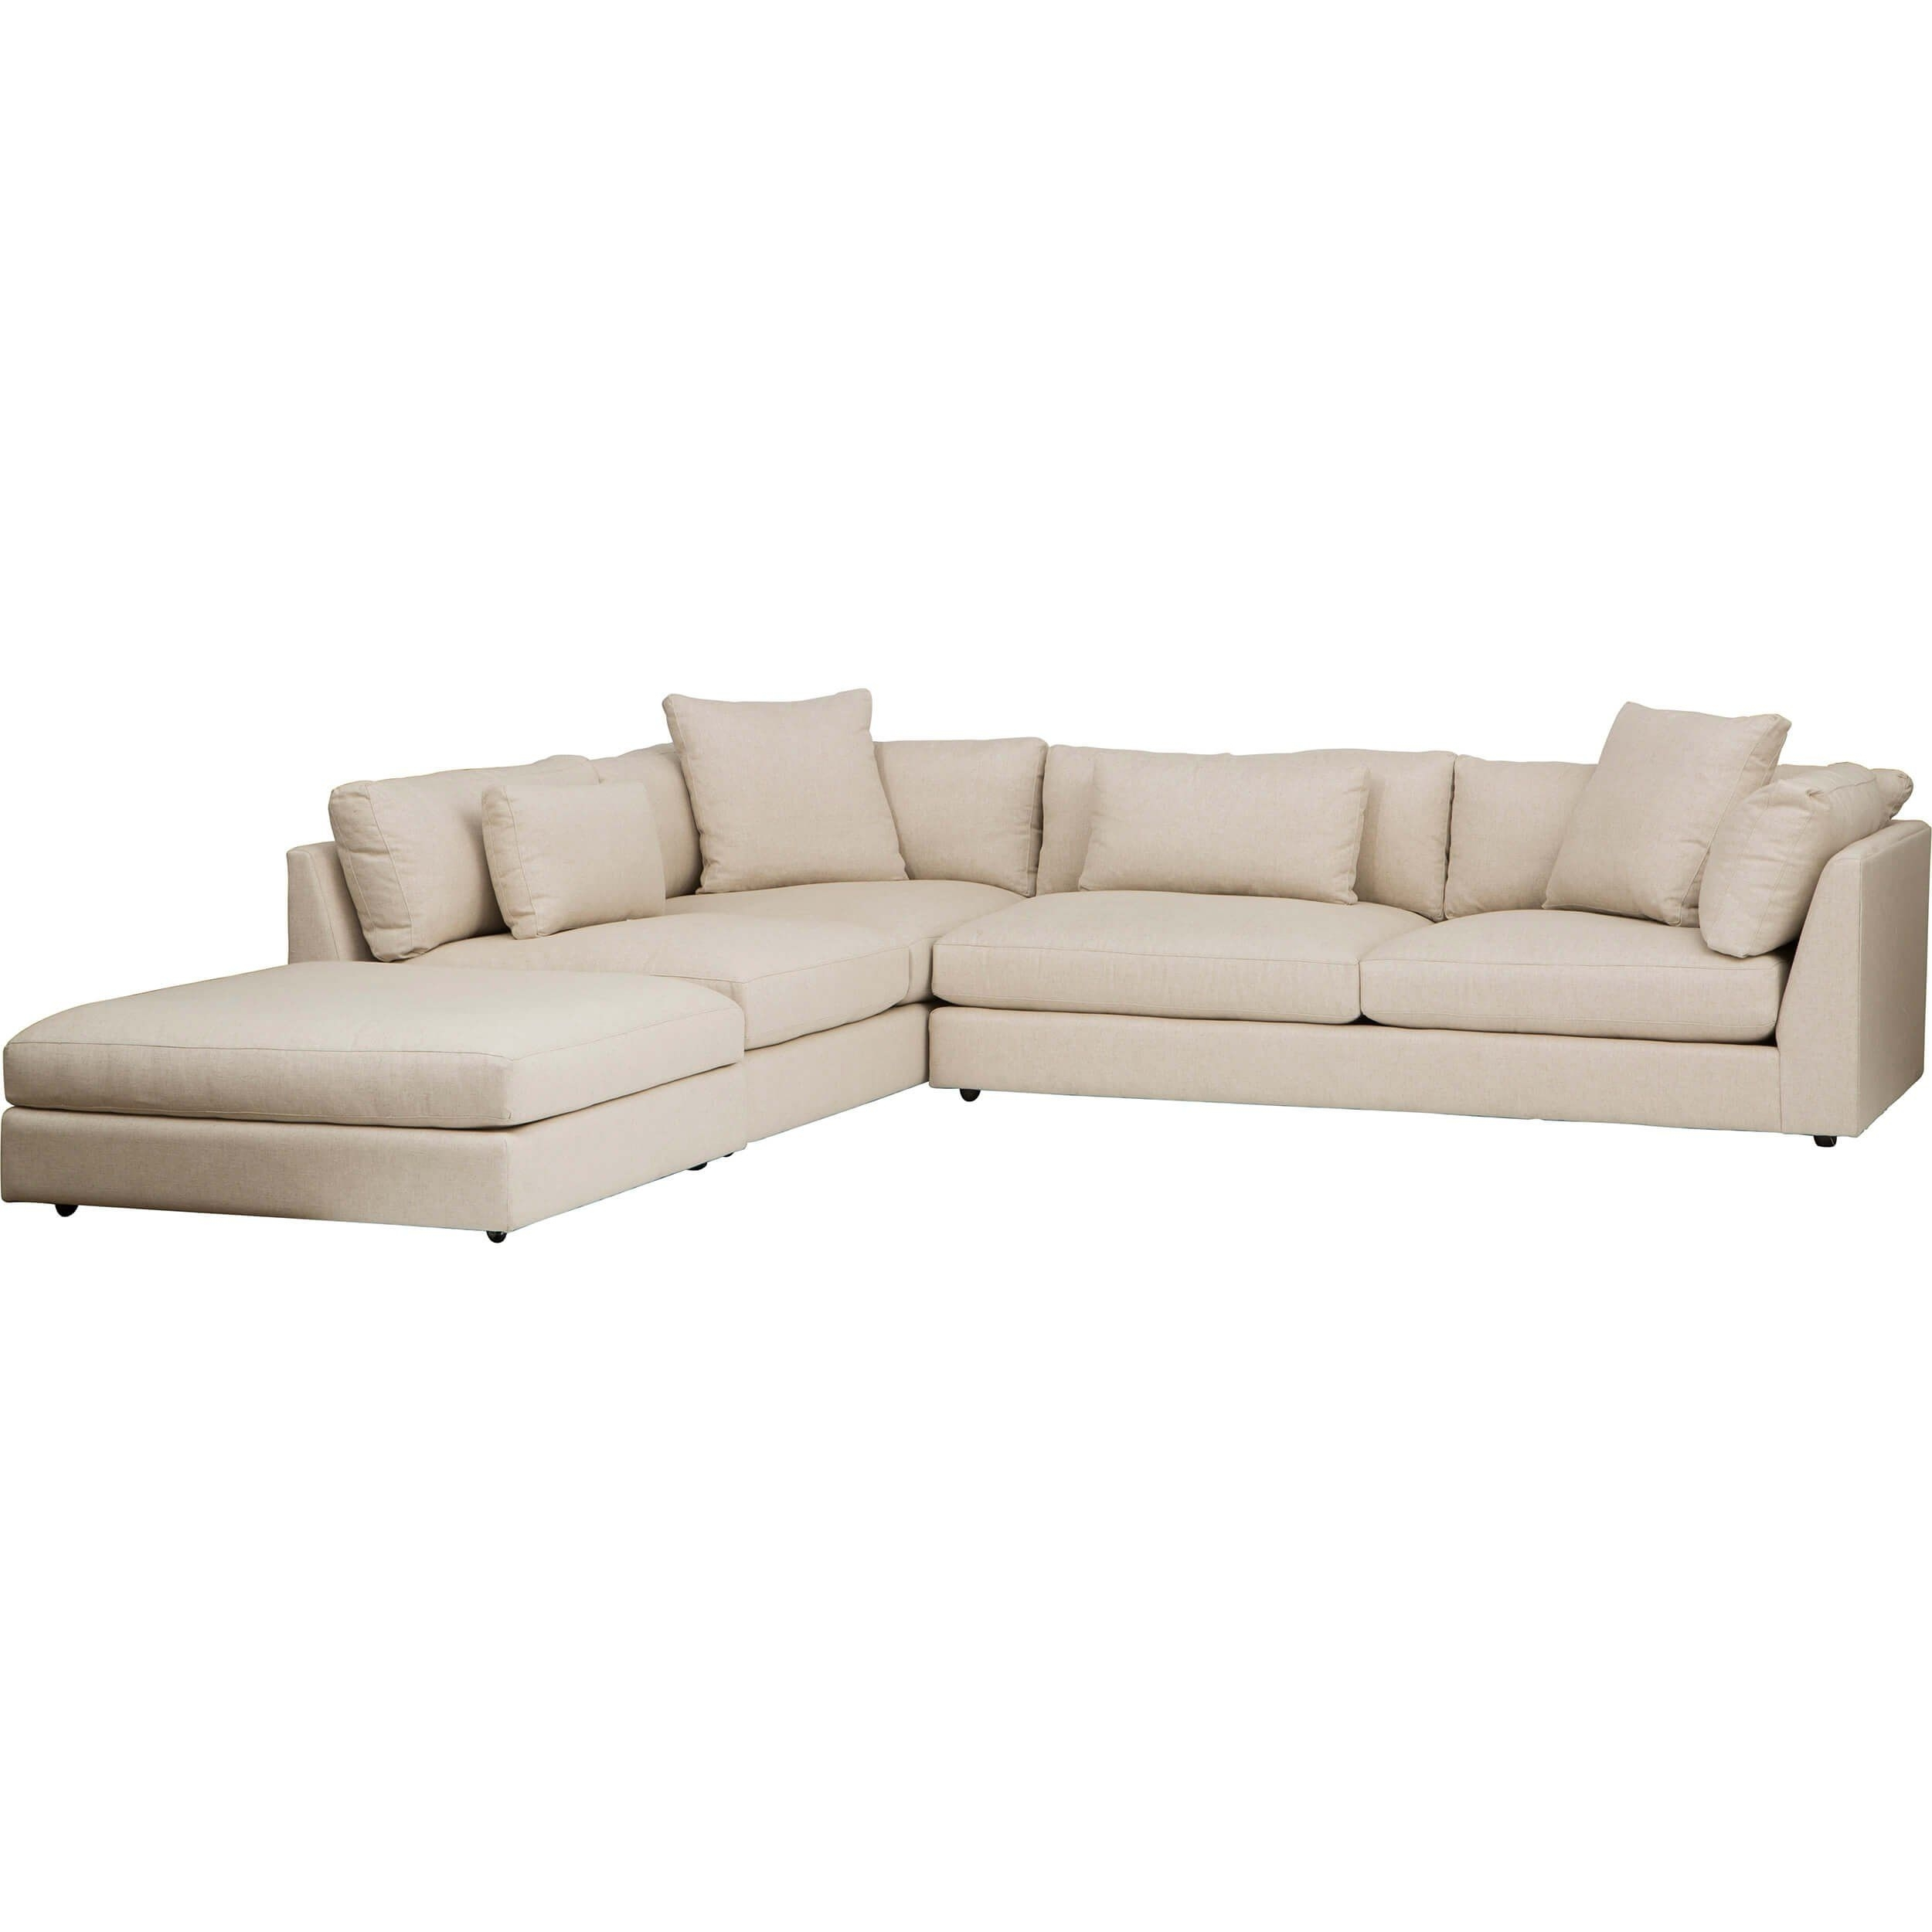 Kellen Sectional, Crevere Cream | Pinterest | Modern, Living Rooms Within Delano Smoke 3 Piece Sectionals (View 3 of 25)